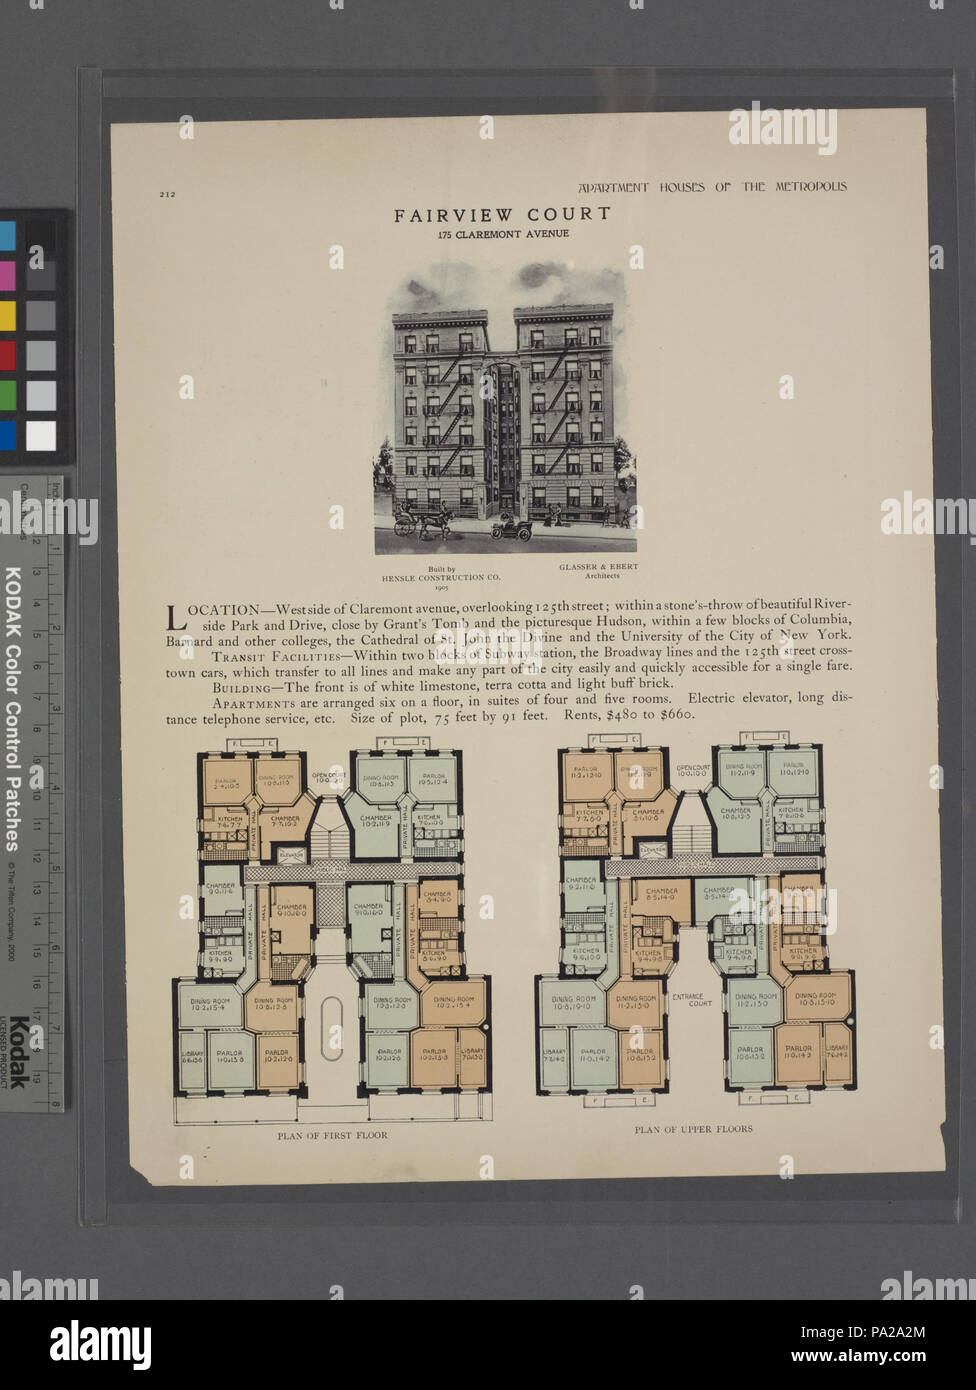 637 Fairview Court, 175 Claremont Avenue; Plan of first floor; Plan of upper floors (NYPL b12647274-465636) - Stock Image